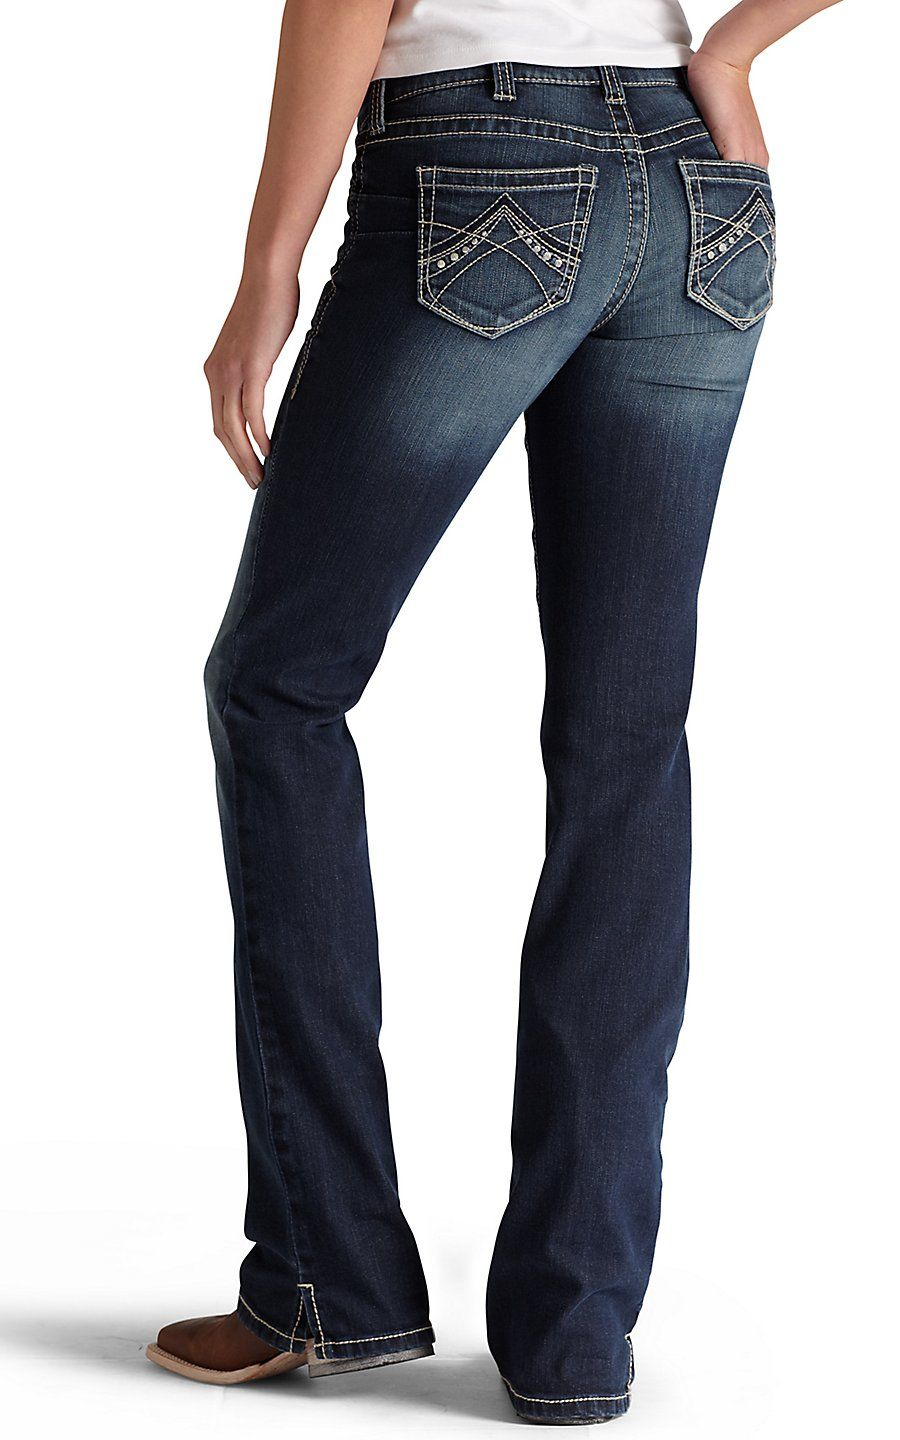 cc4c64a2223 Ariat® REAL Denim™ Women s Spitfire Boot Cut Mid-Rise Medium Wash Riding  Jeans